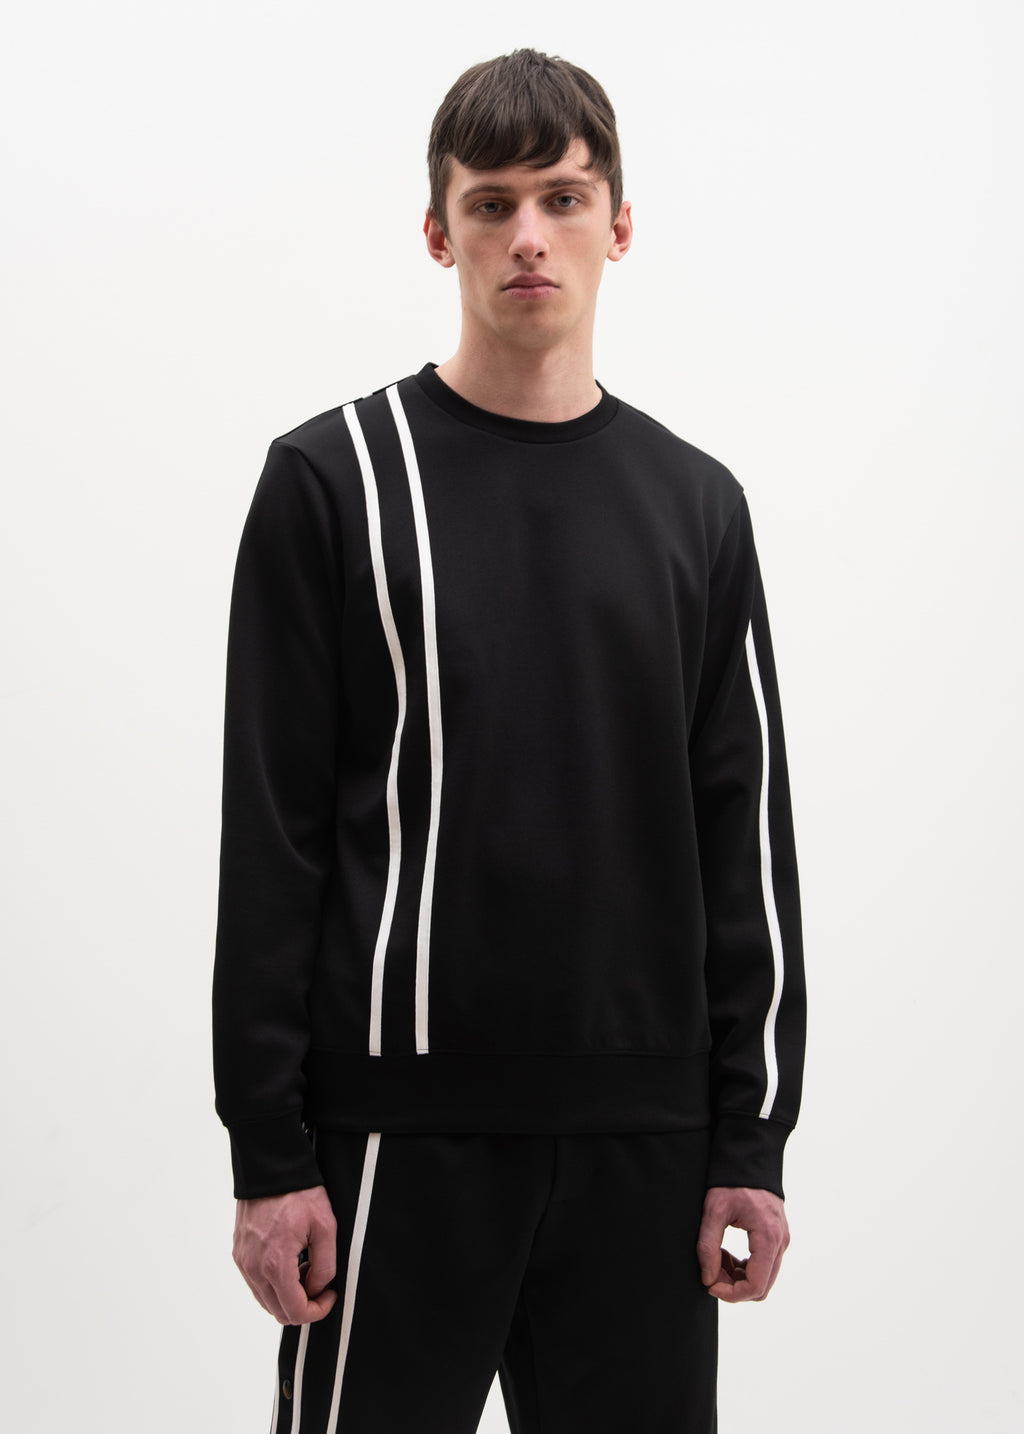 Helmut Lang, Black Sport Stripe Sweatshirt, 017 Shop